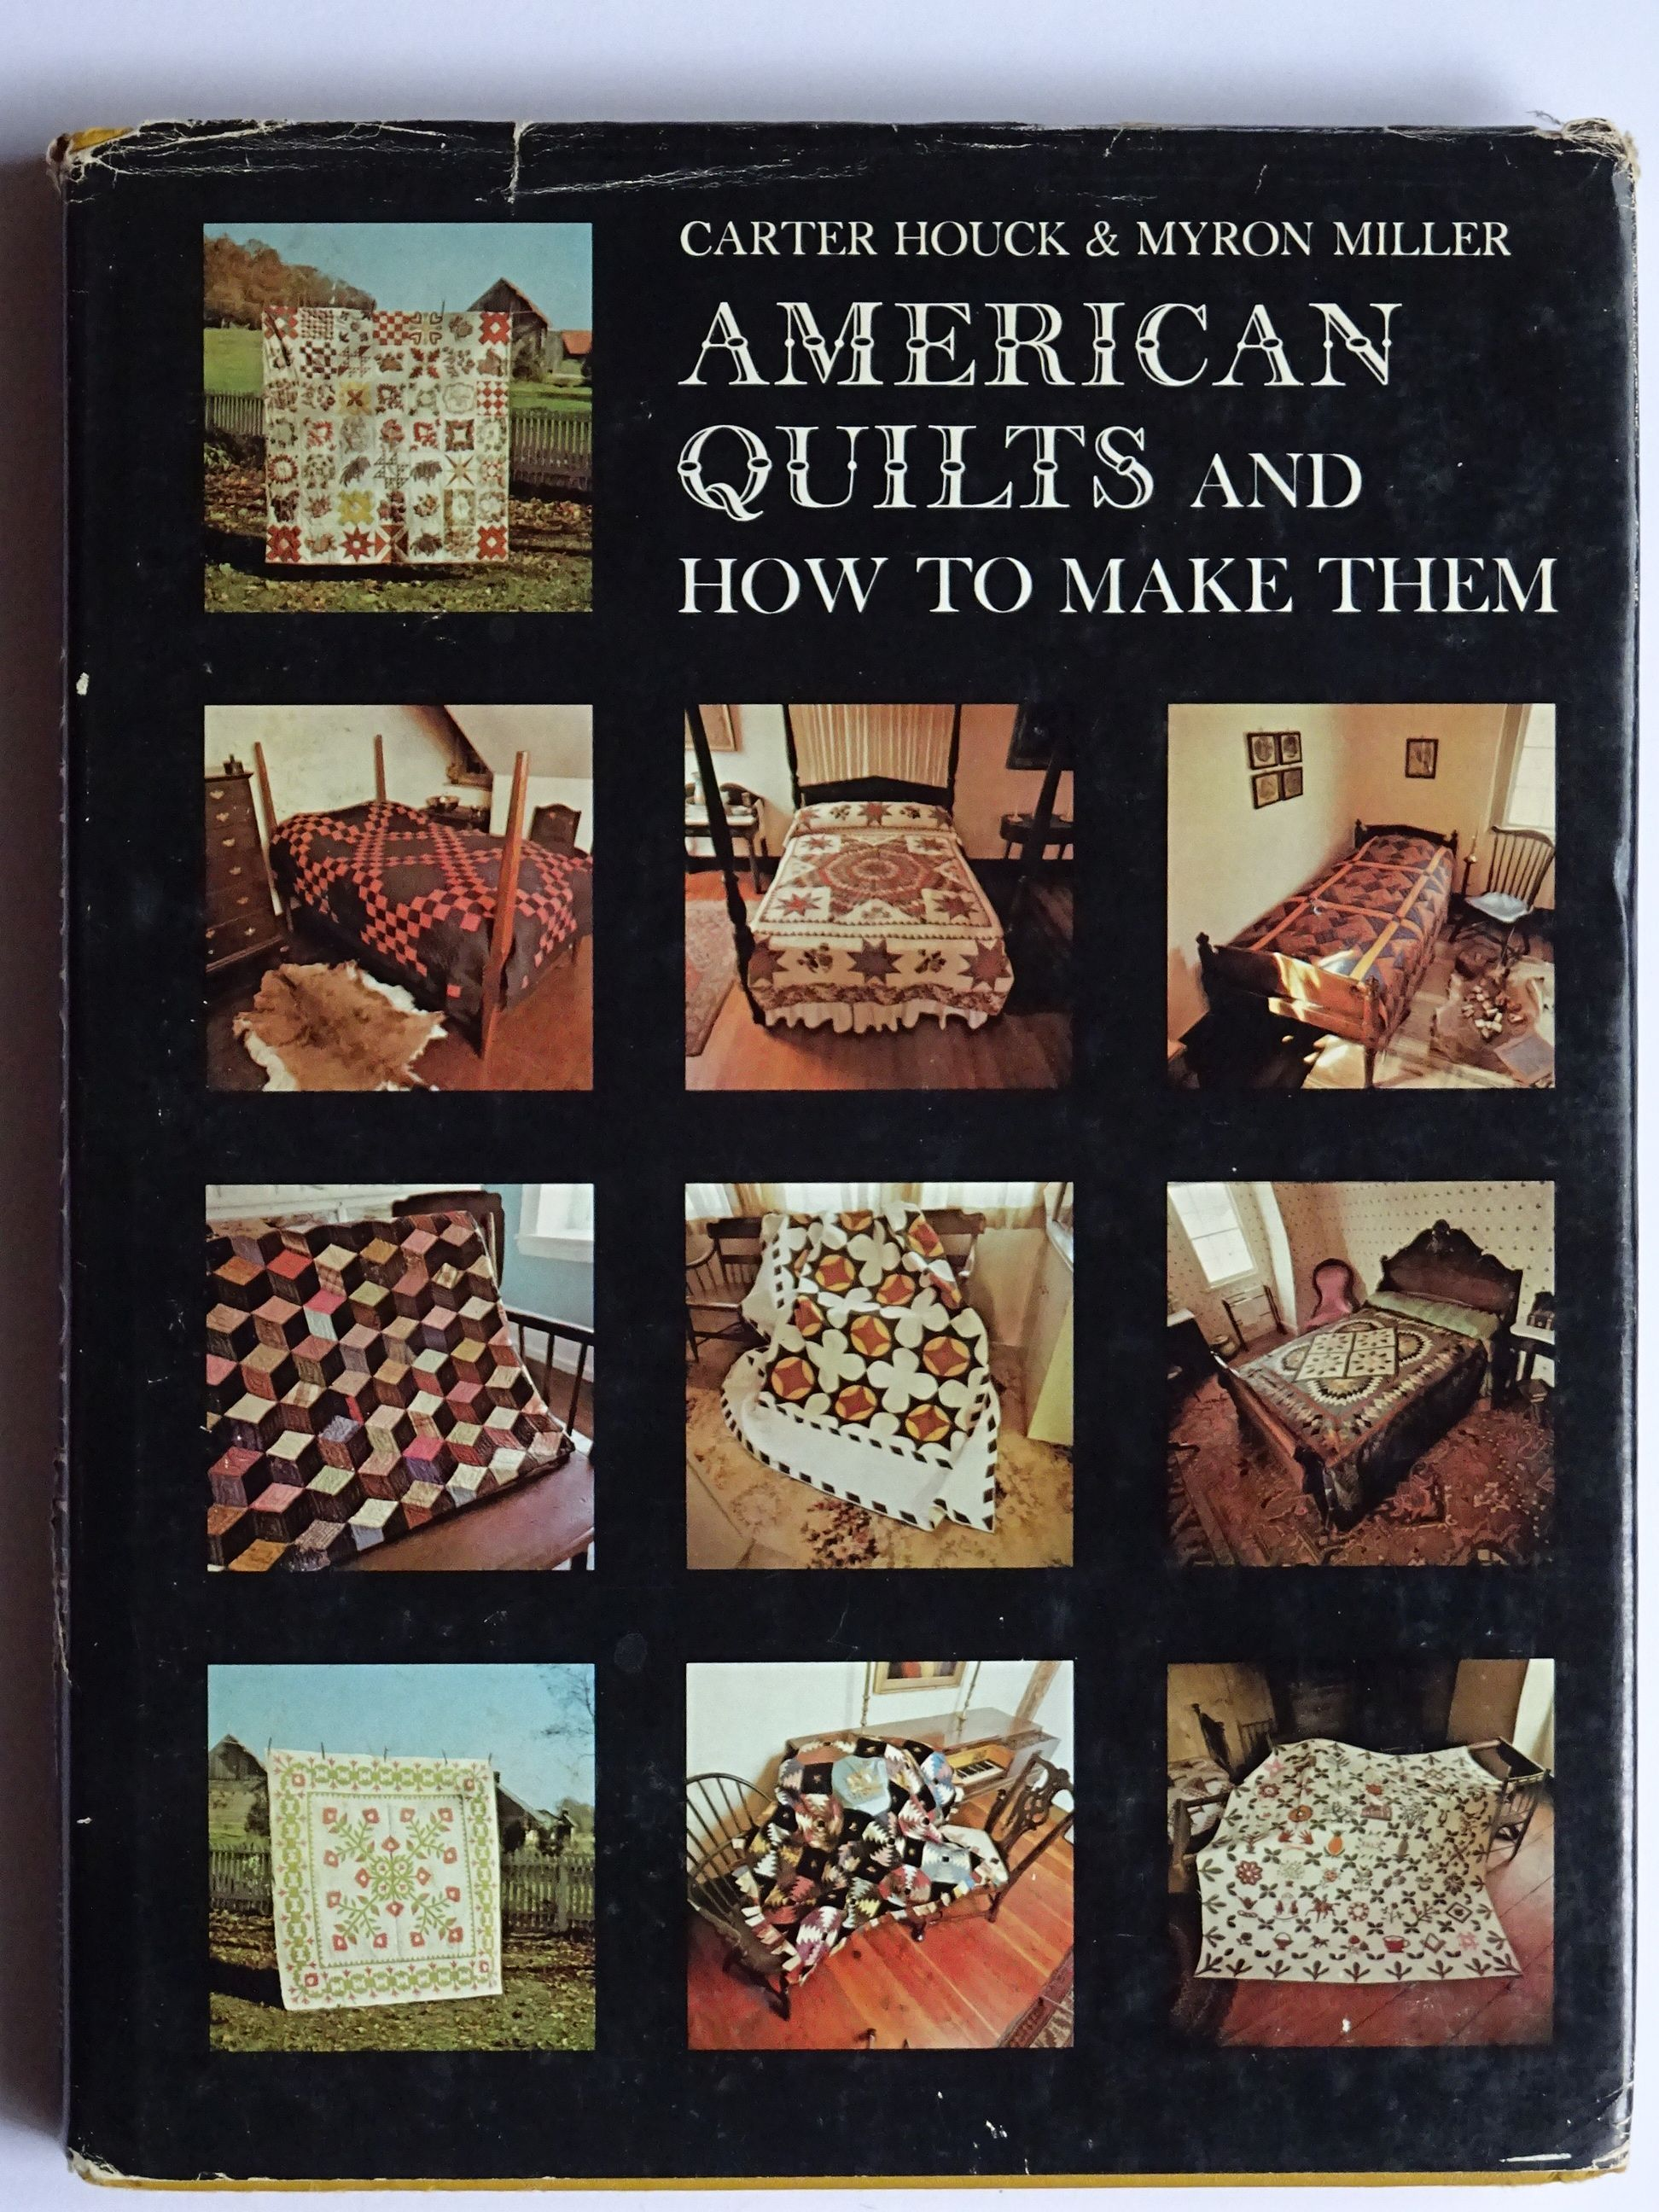 Houck, Carter & Miller, Myron - American Quilts and how to make them.